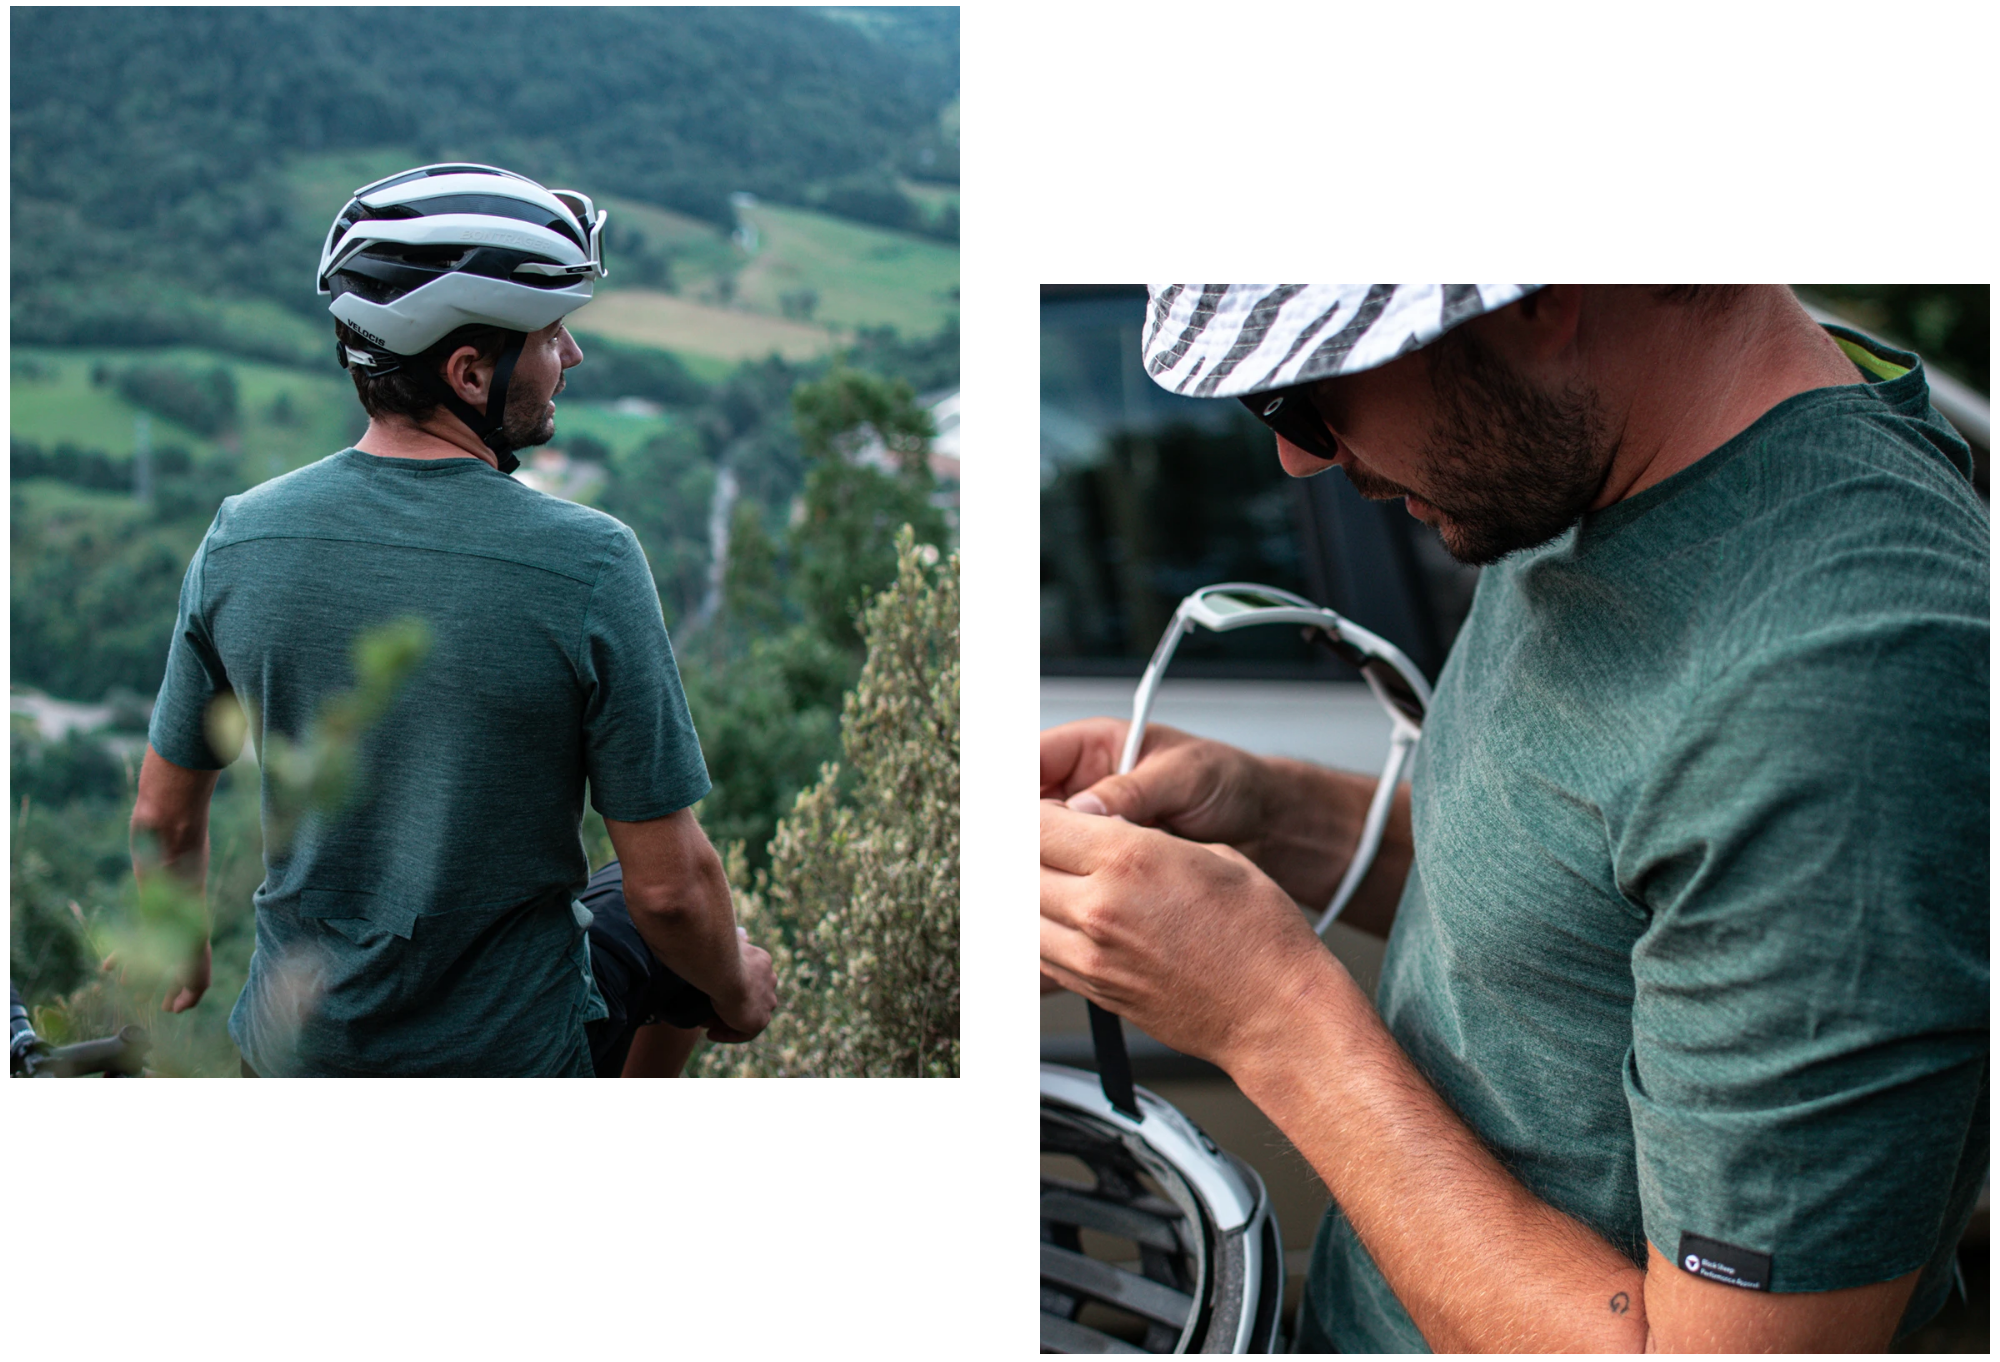 Black Sheep Cycling ADVENTURE Tシャツ - Dark Green  |  CYCLISM